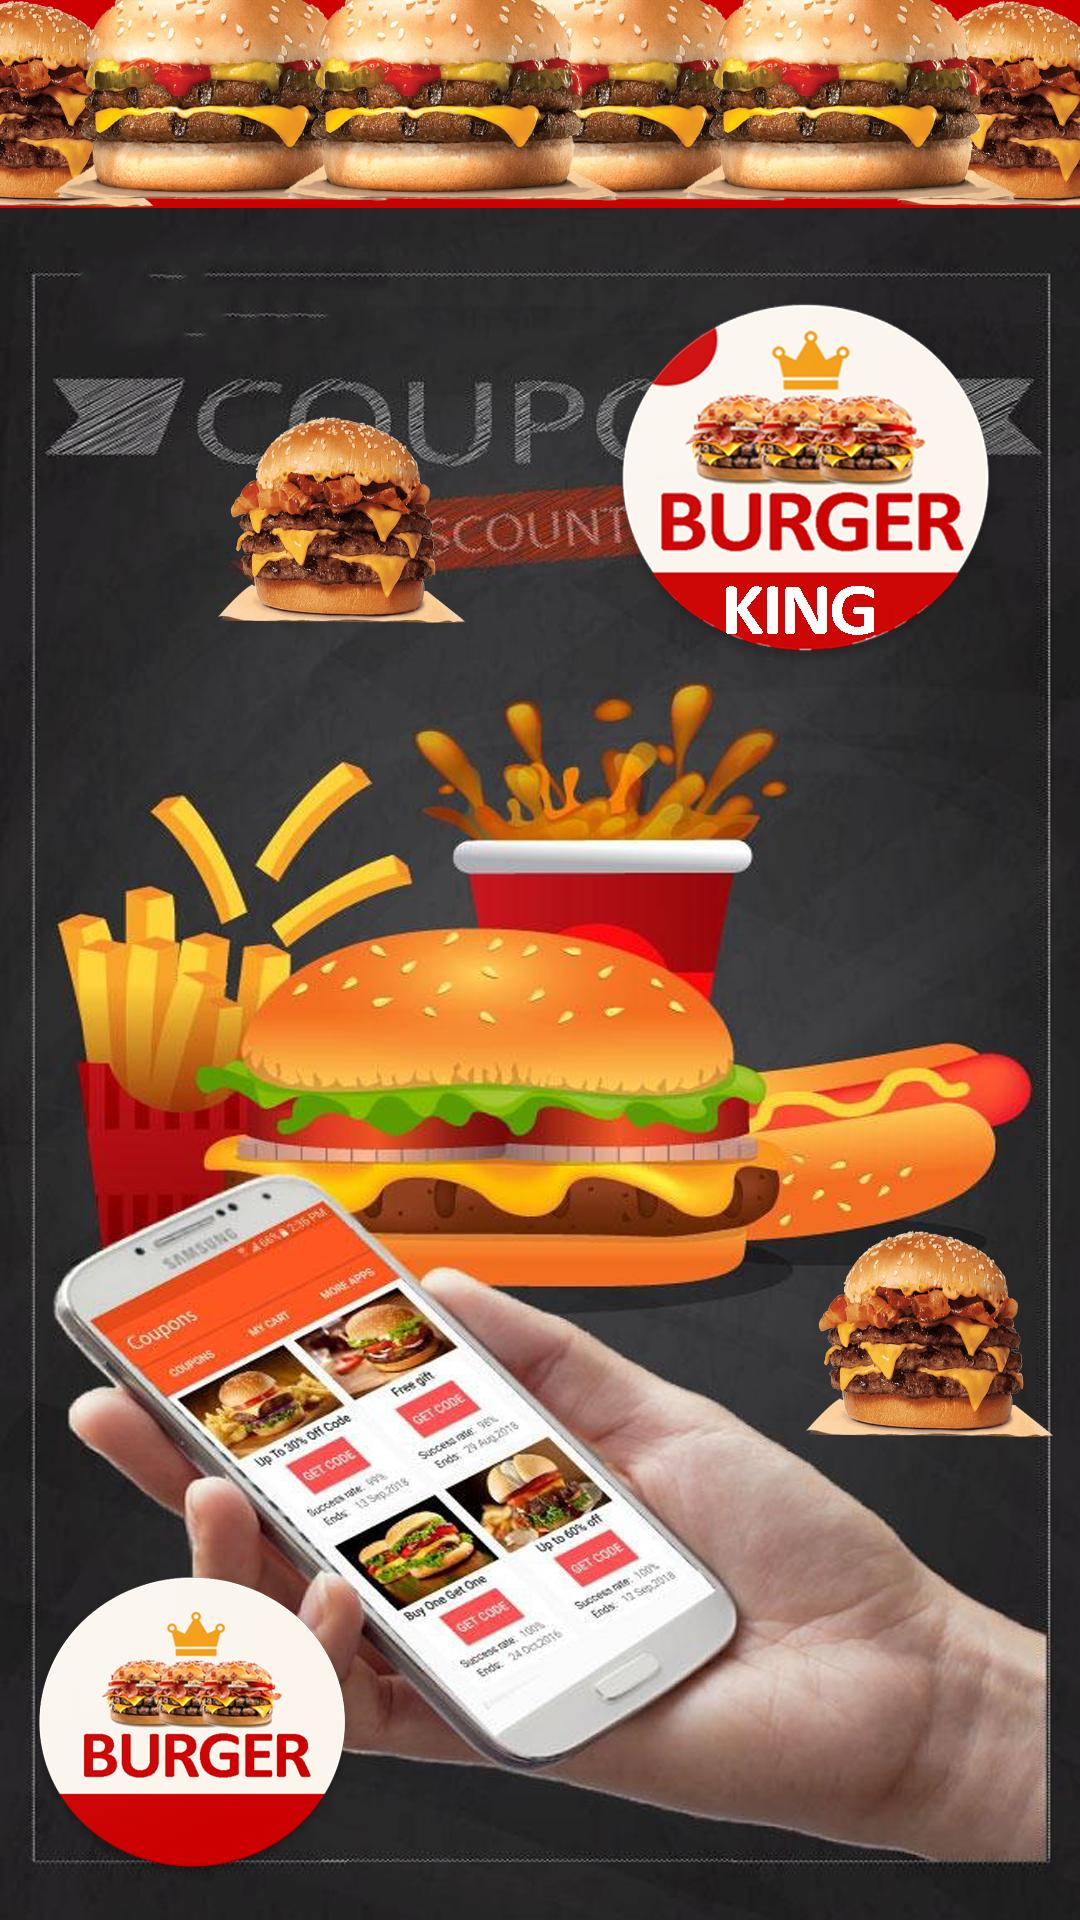 Food Coupons for Burger King - Hot Discounts ????????